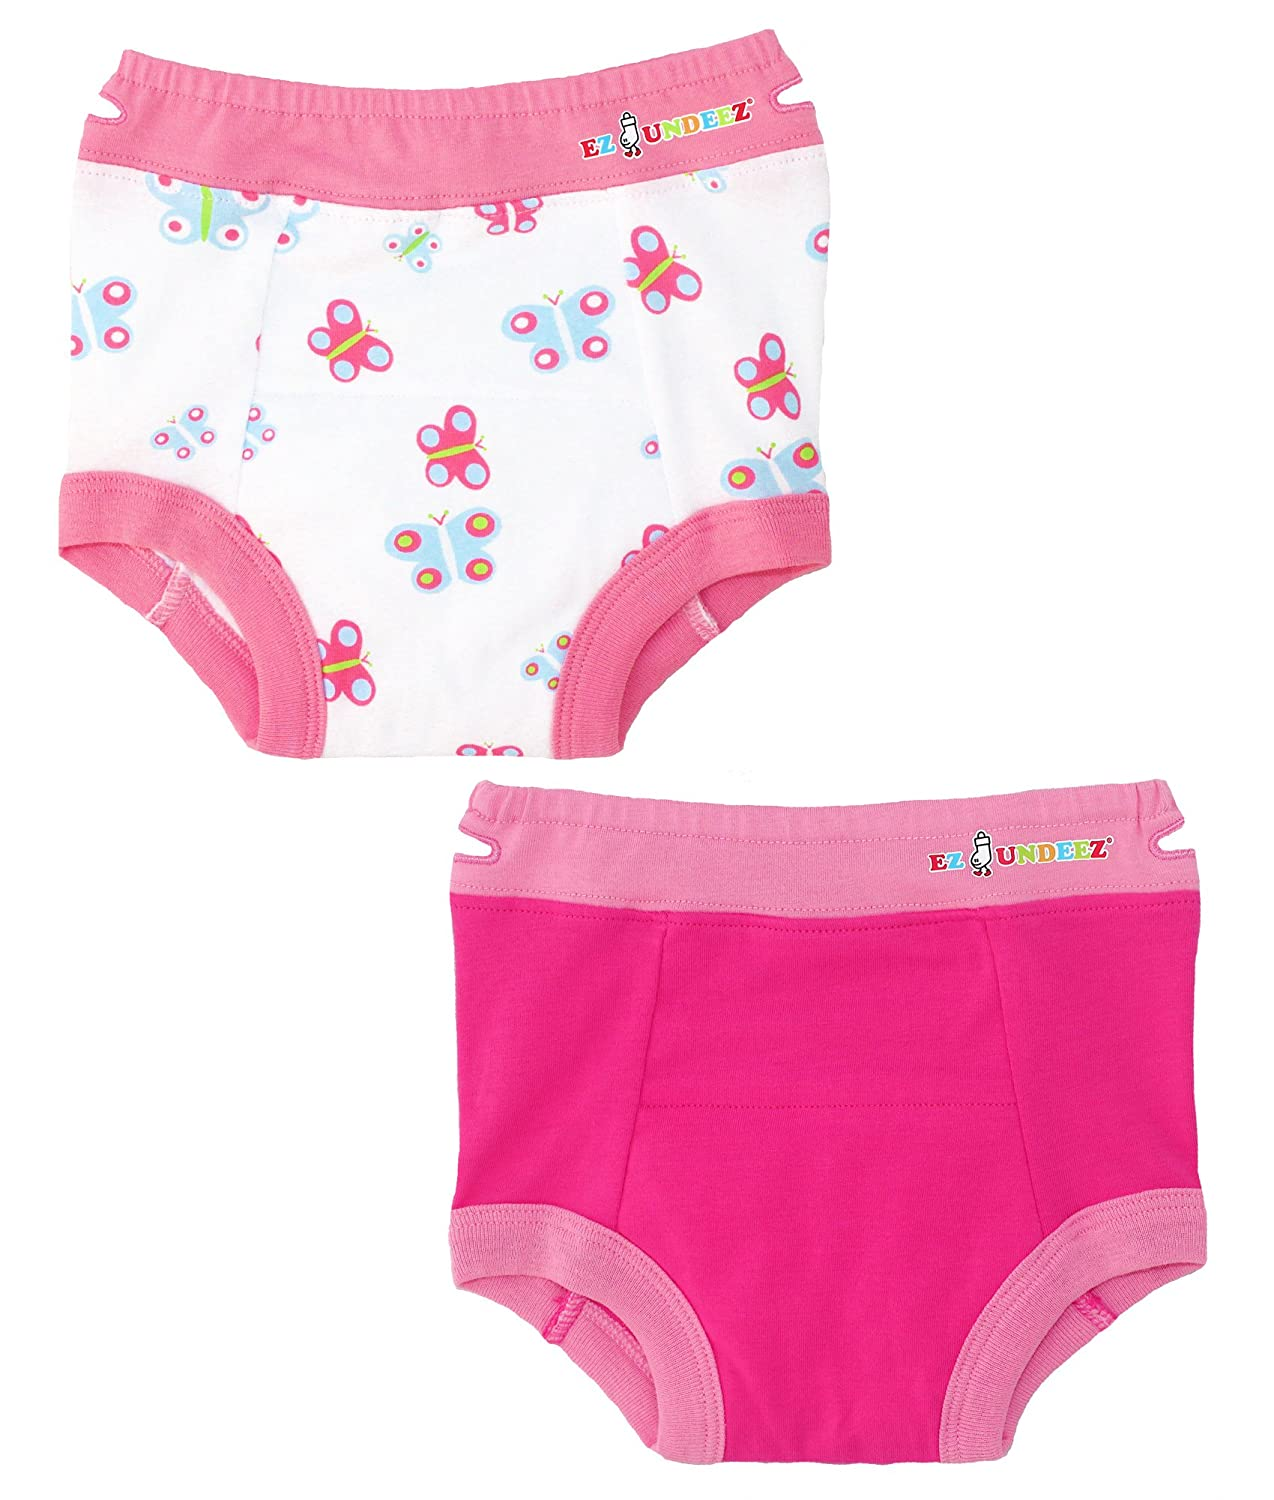 Ez Undeez Toddler Underwear Girls Padded Potty Training Pants Easy Pull Ups Ez Sox